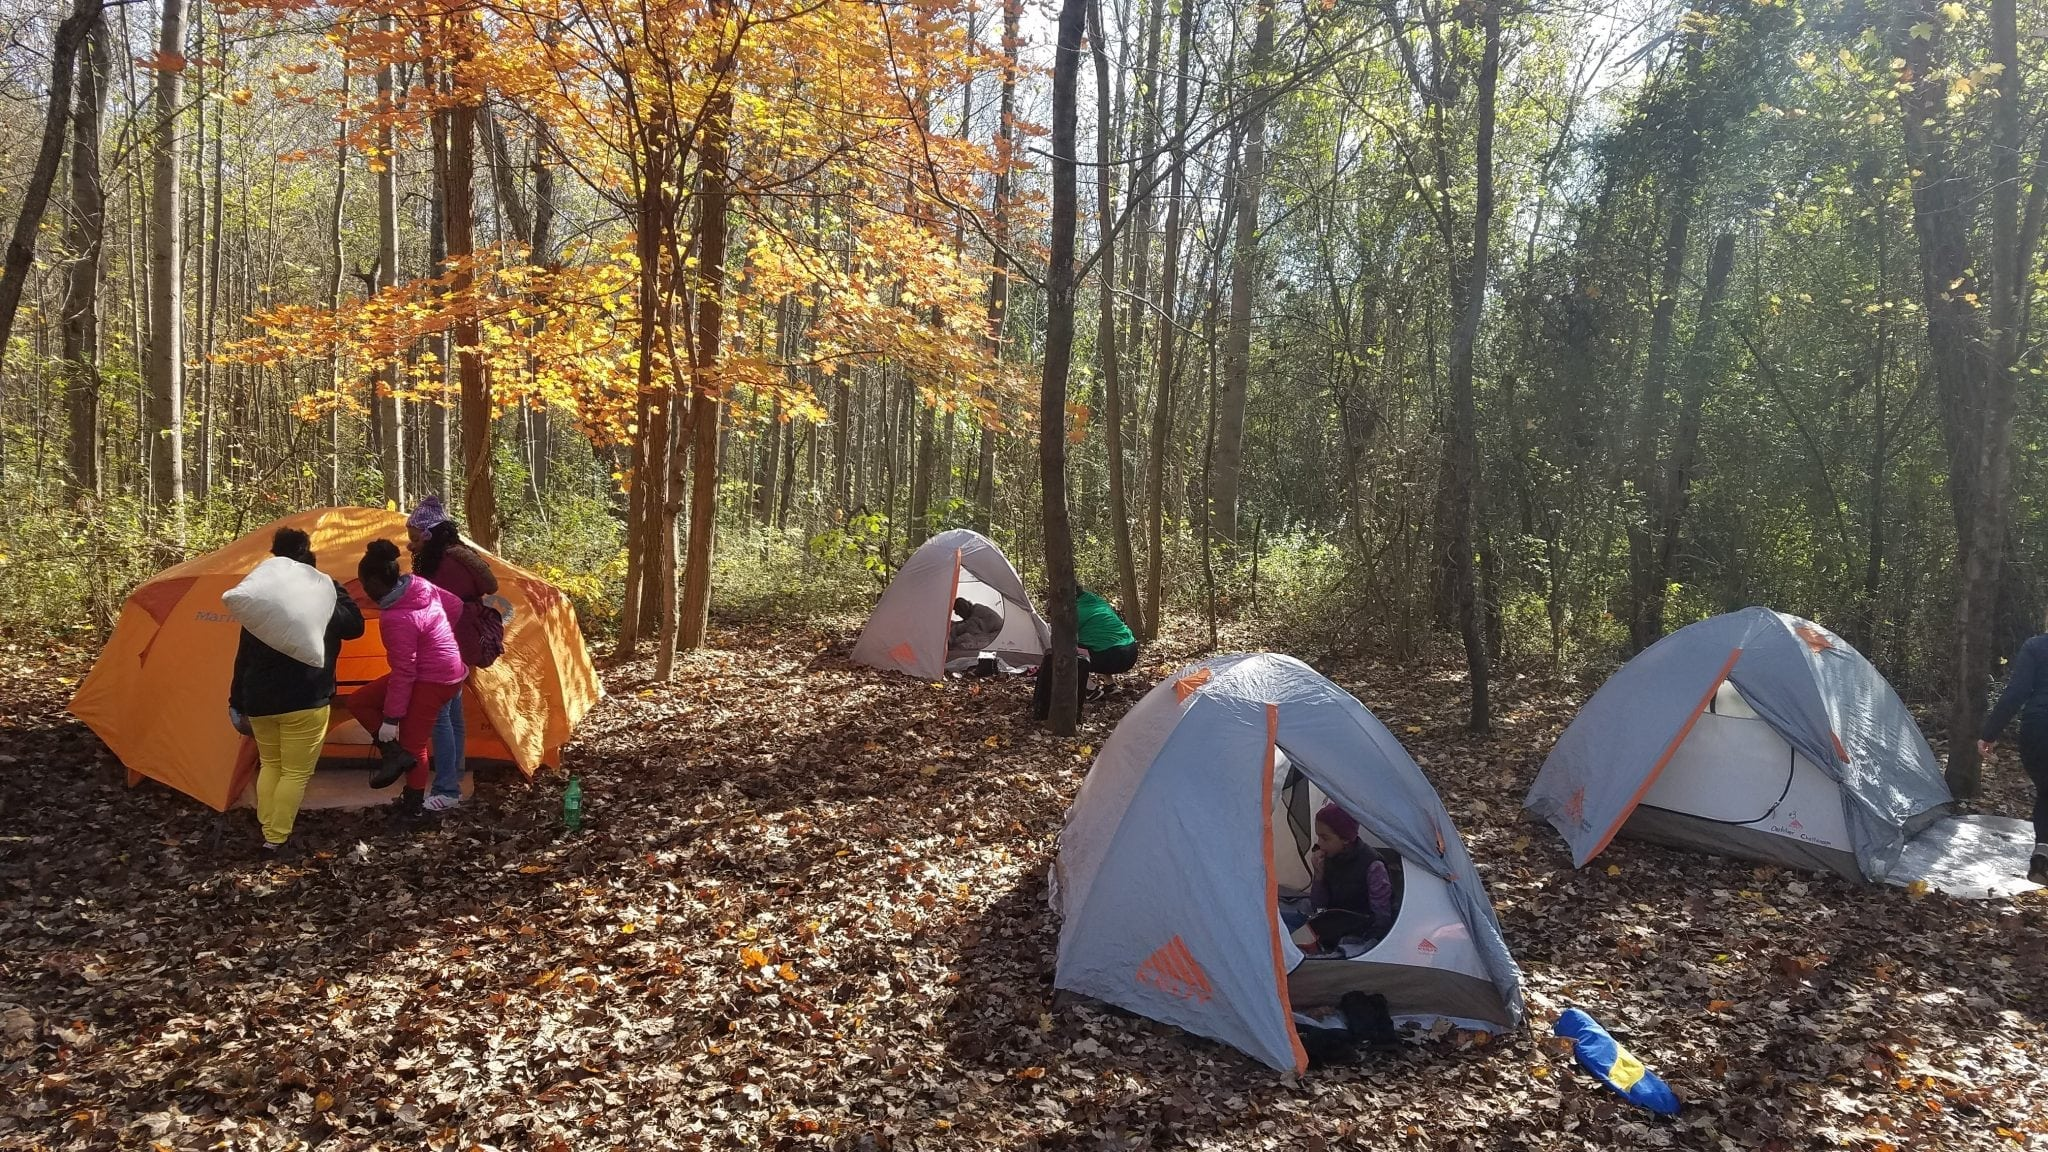 Camping | Outdoor Chattanooga